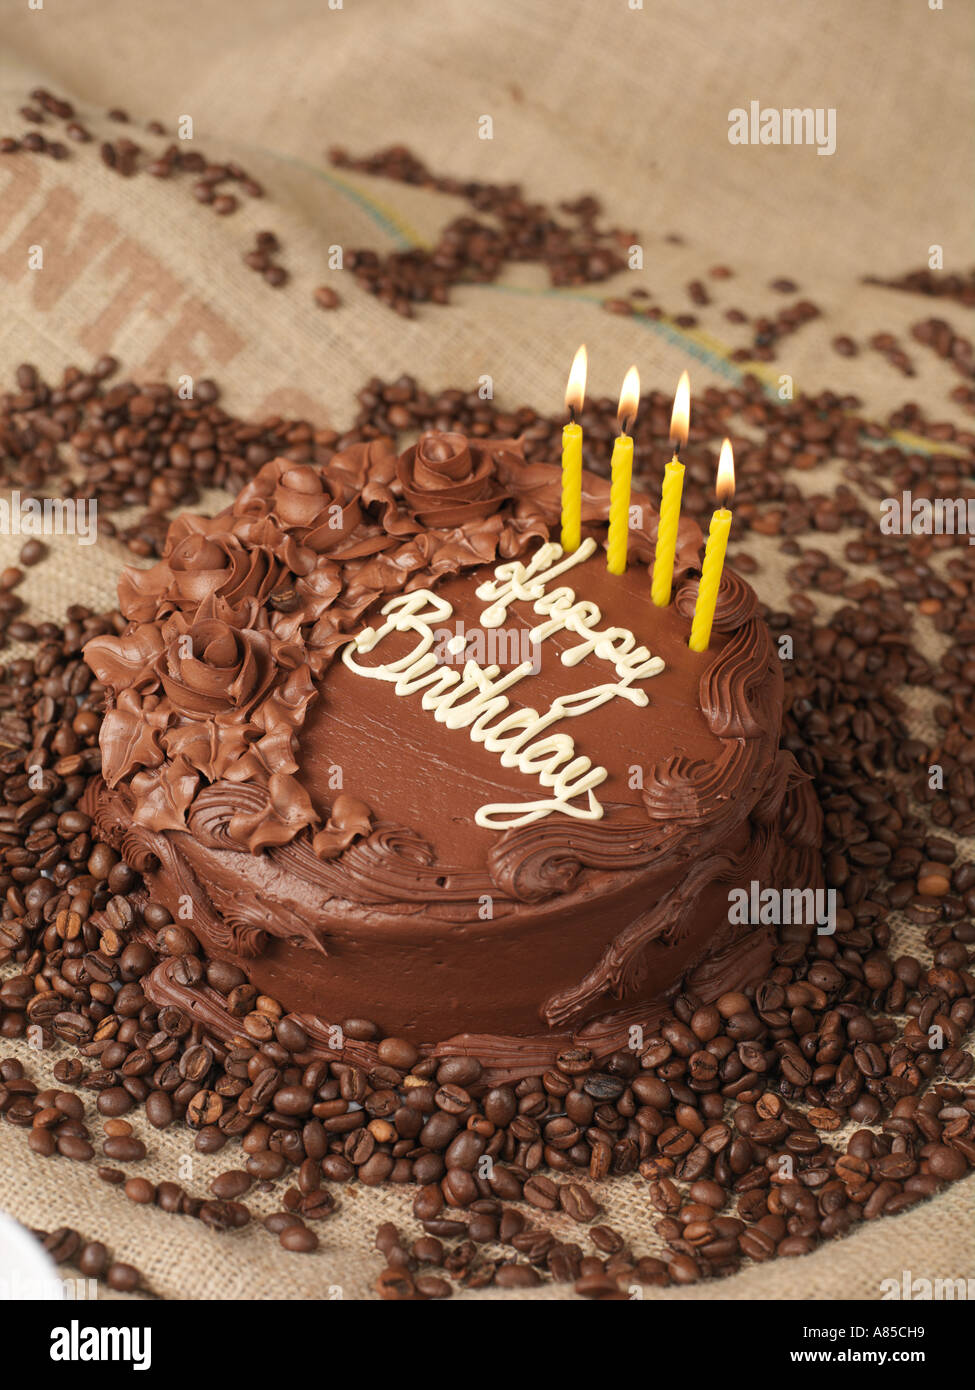 Chocolate Birthday Cake Four Candles Stock Photos Chocolate